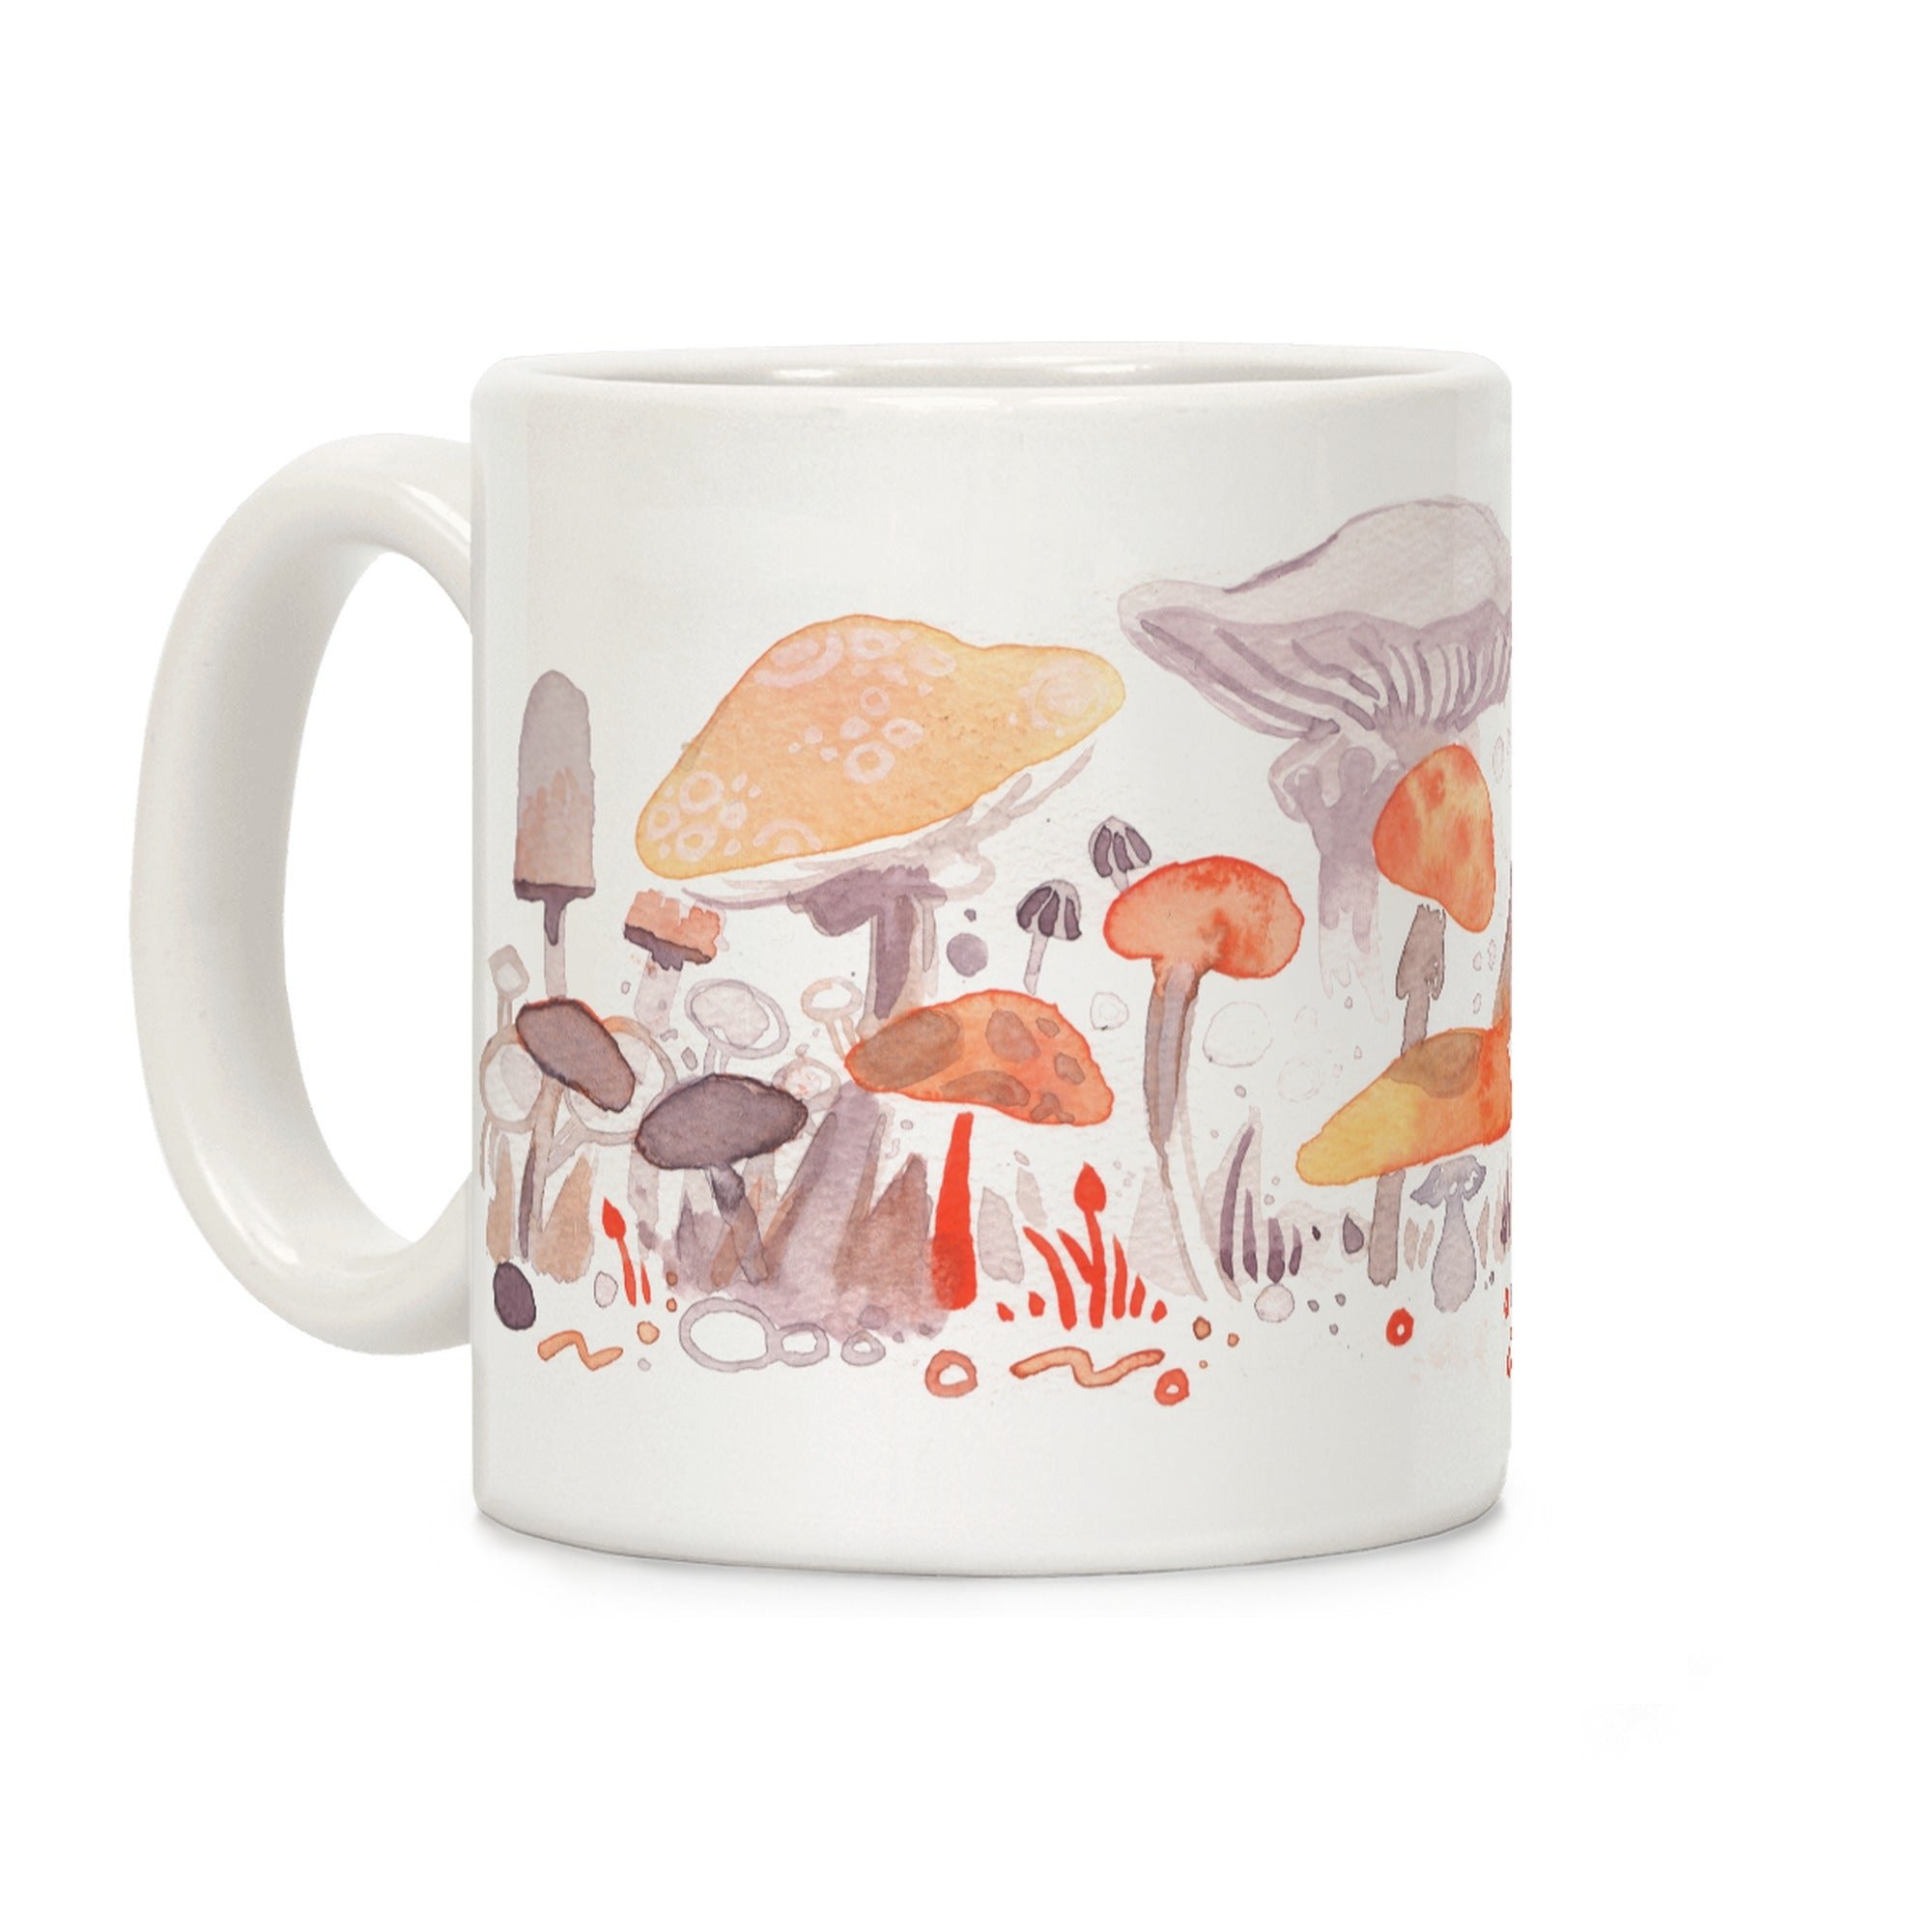 Mushroom Garden Pattern Ceramic Coffee Mug by LookHUMAN